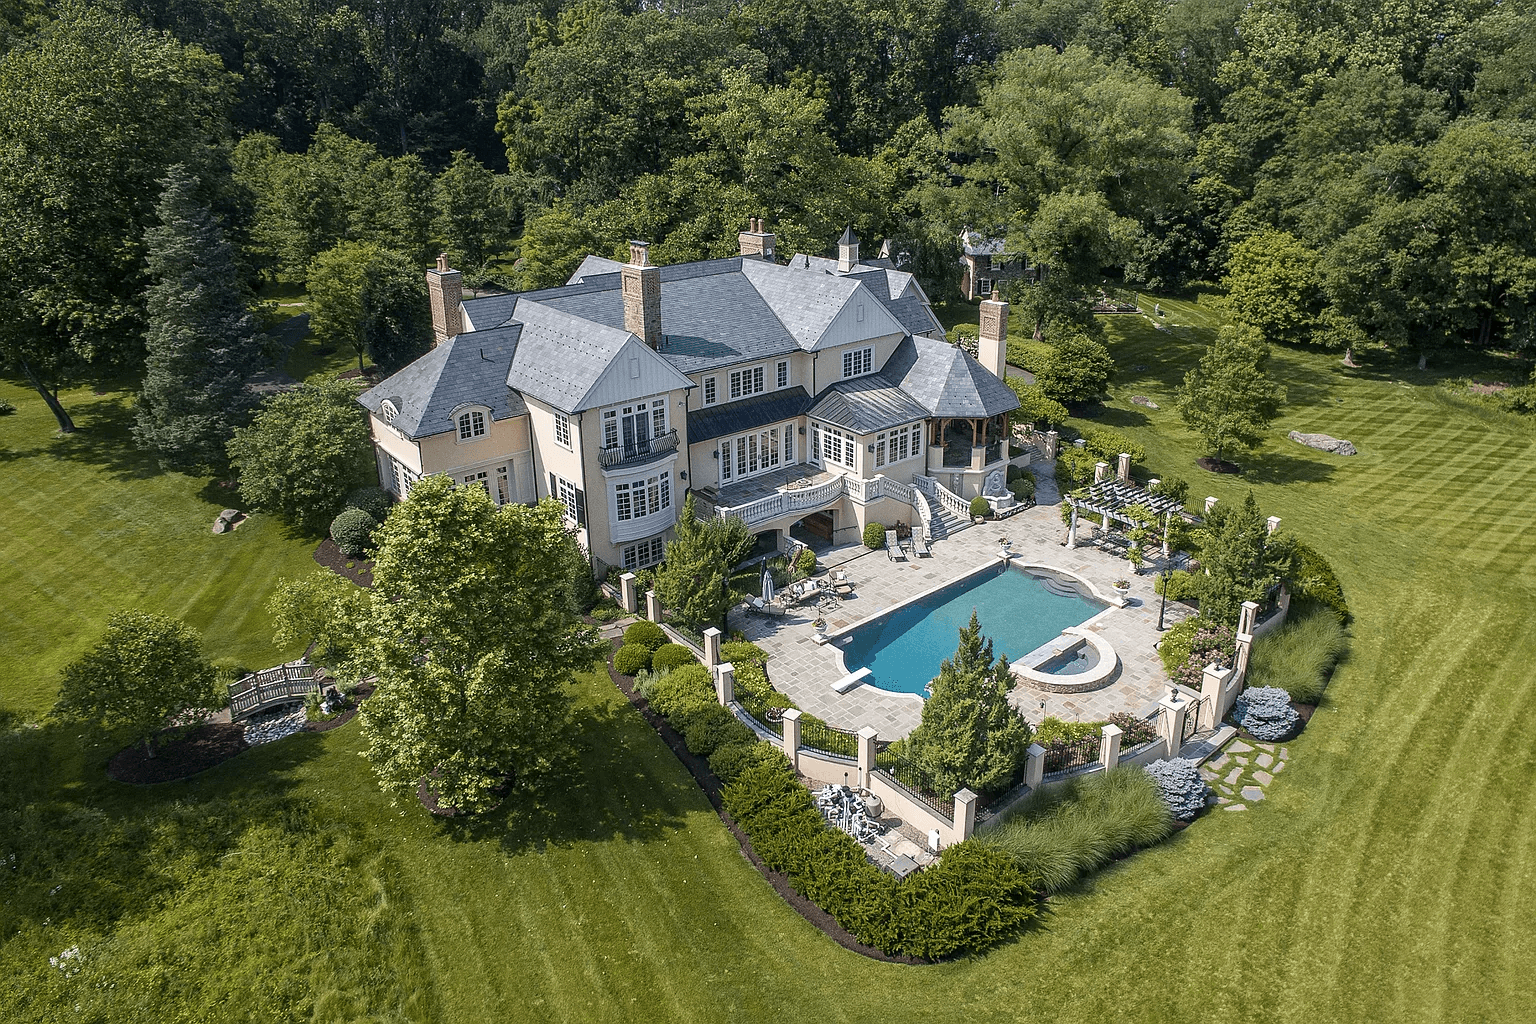 house for sale new hope rockwood farm estate house backyard aerial view